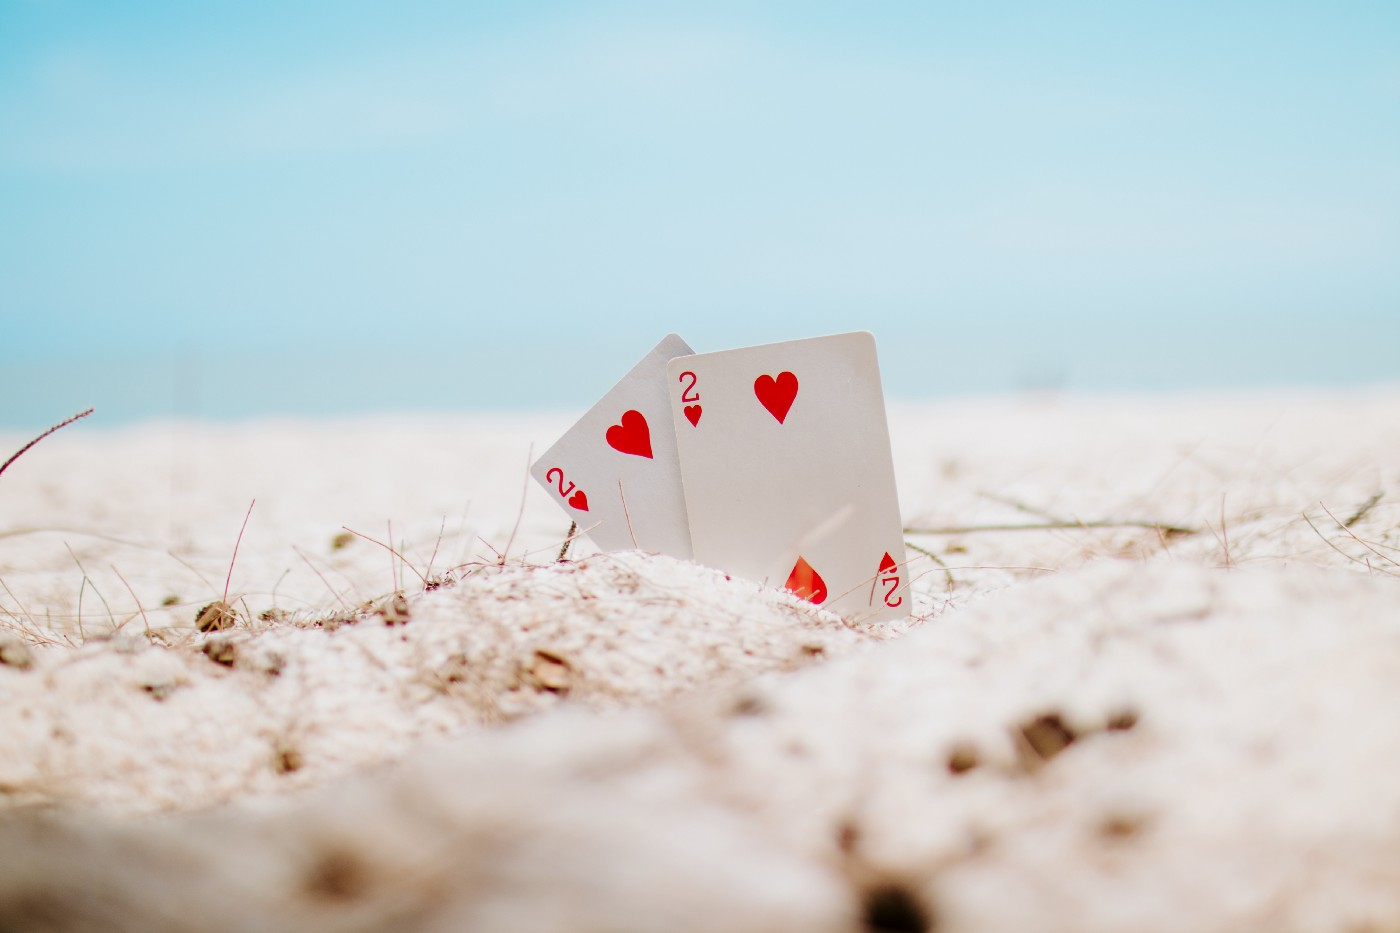 Two deuces, two of hearts